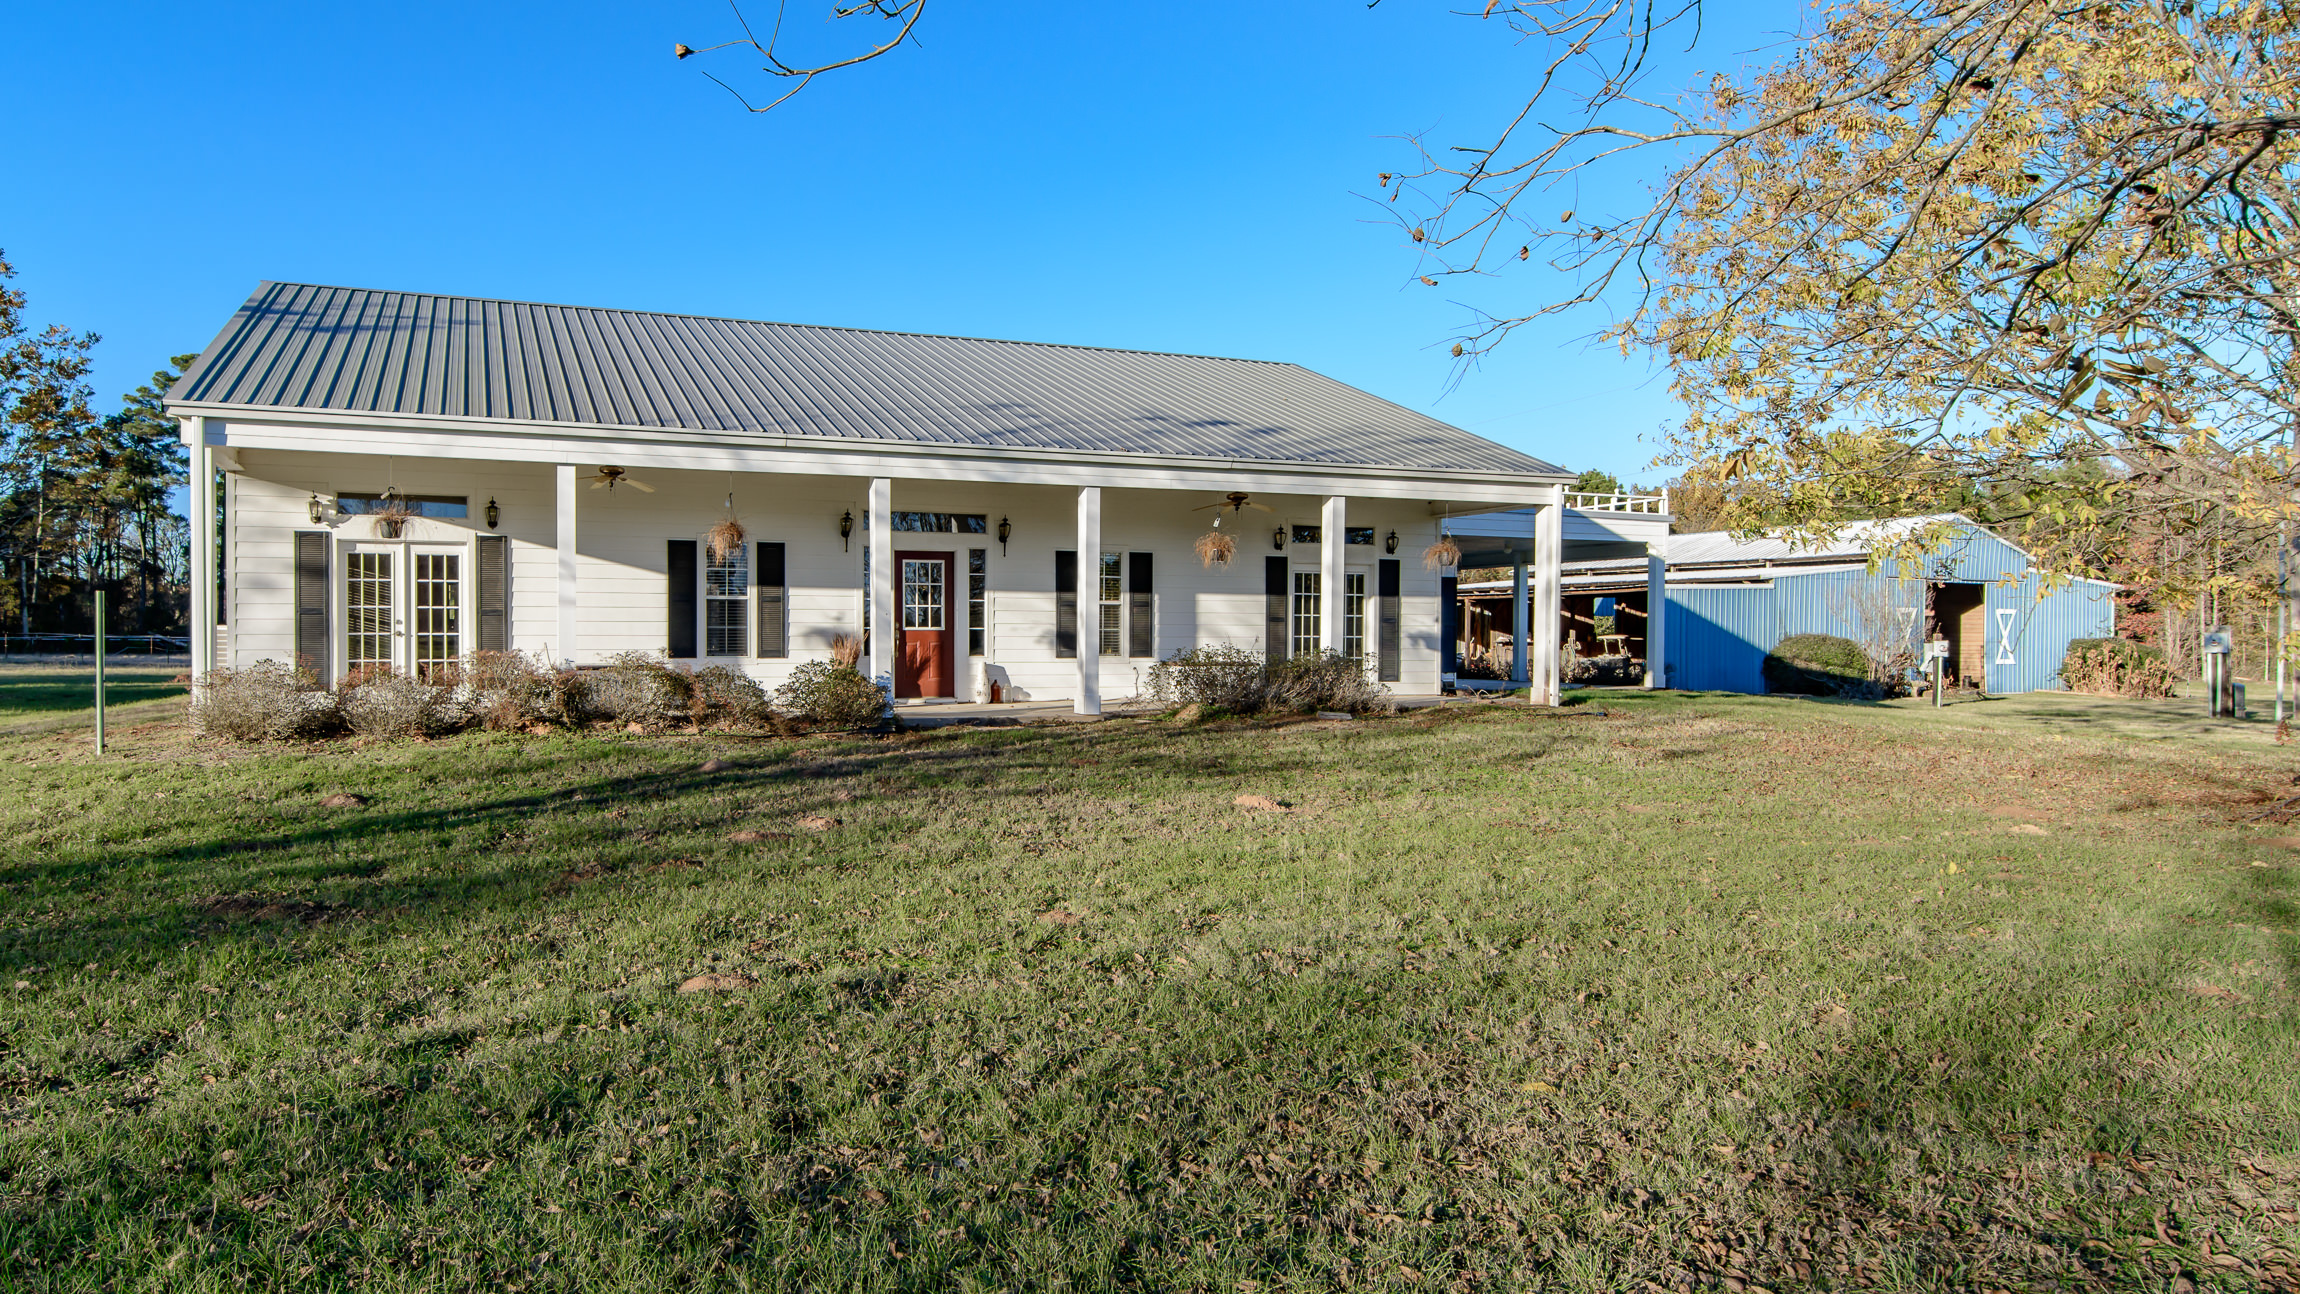 210 Doyal Rd, Benton, Louisiana 71006